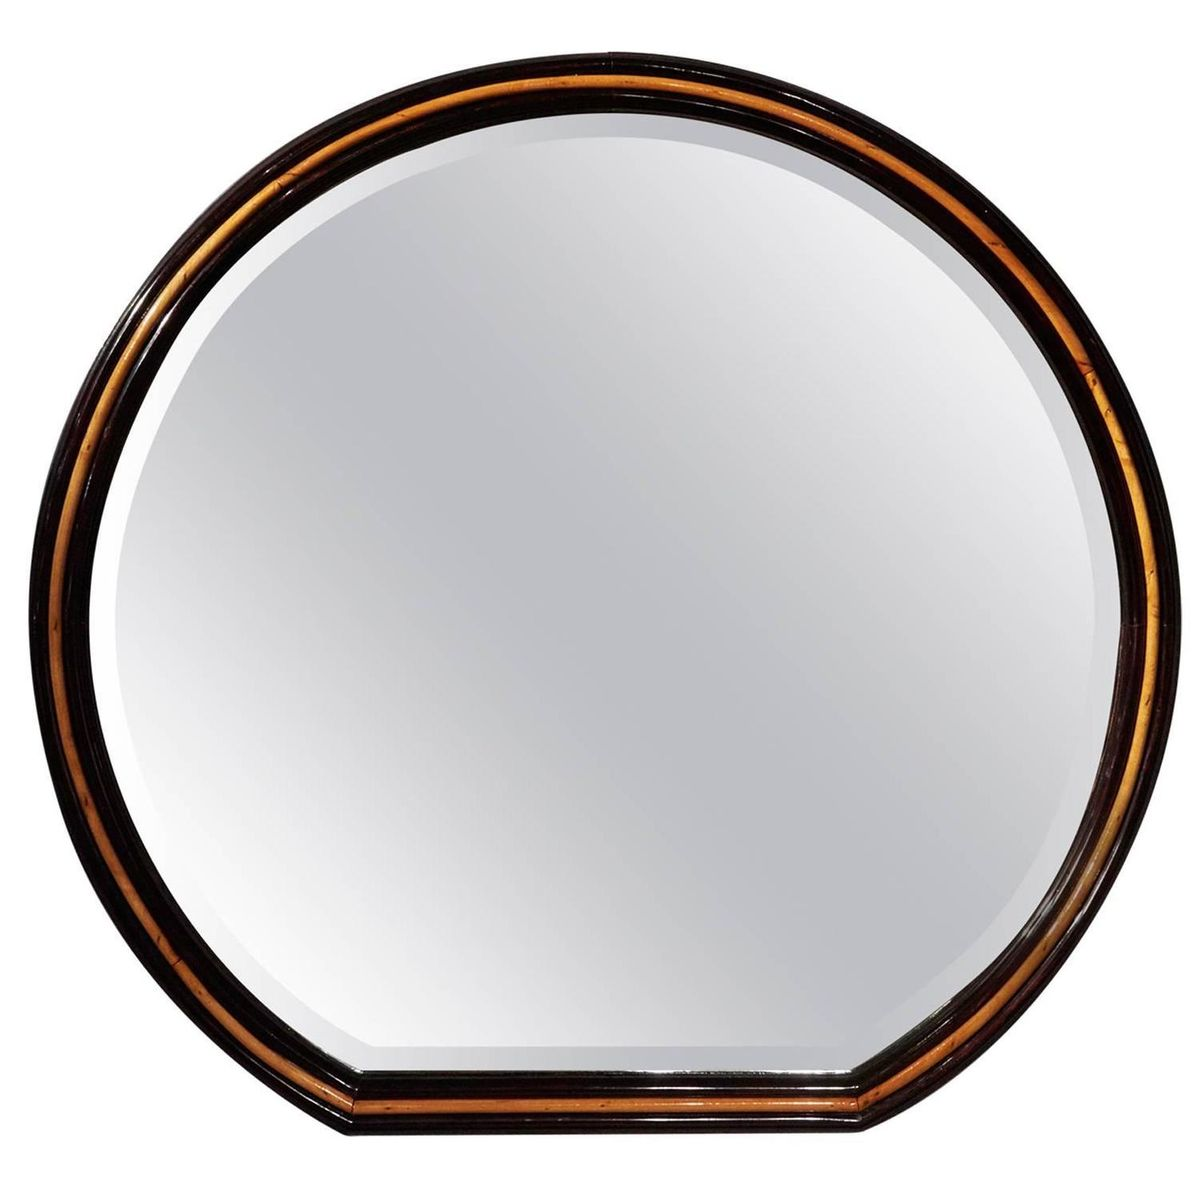 Miroir art d co en fr ne 1930 en vente sur pamono for Miroir art deco 1930